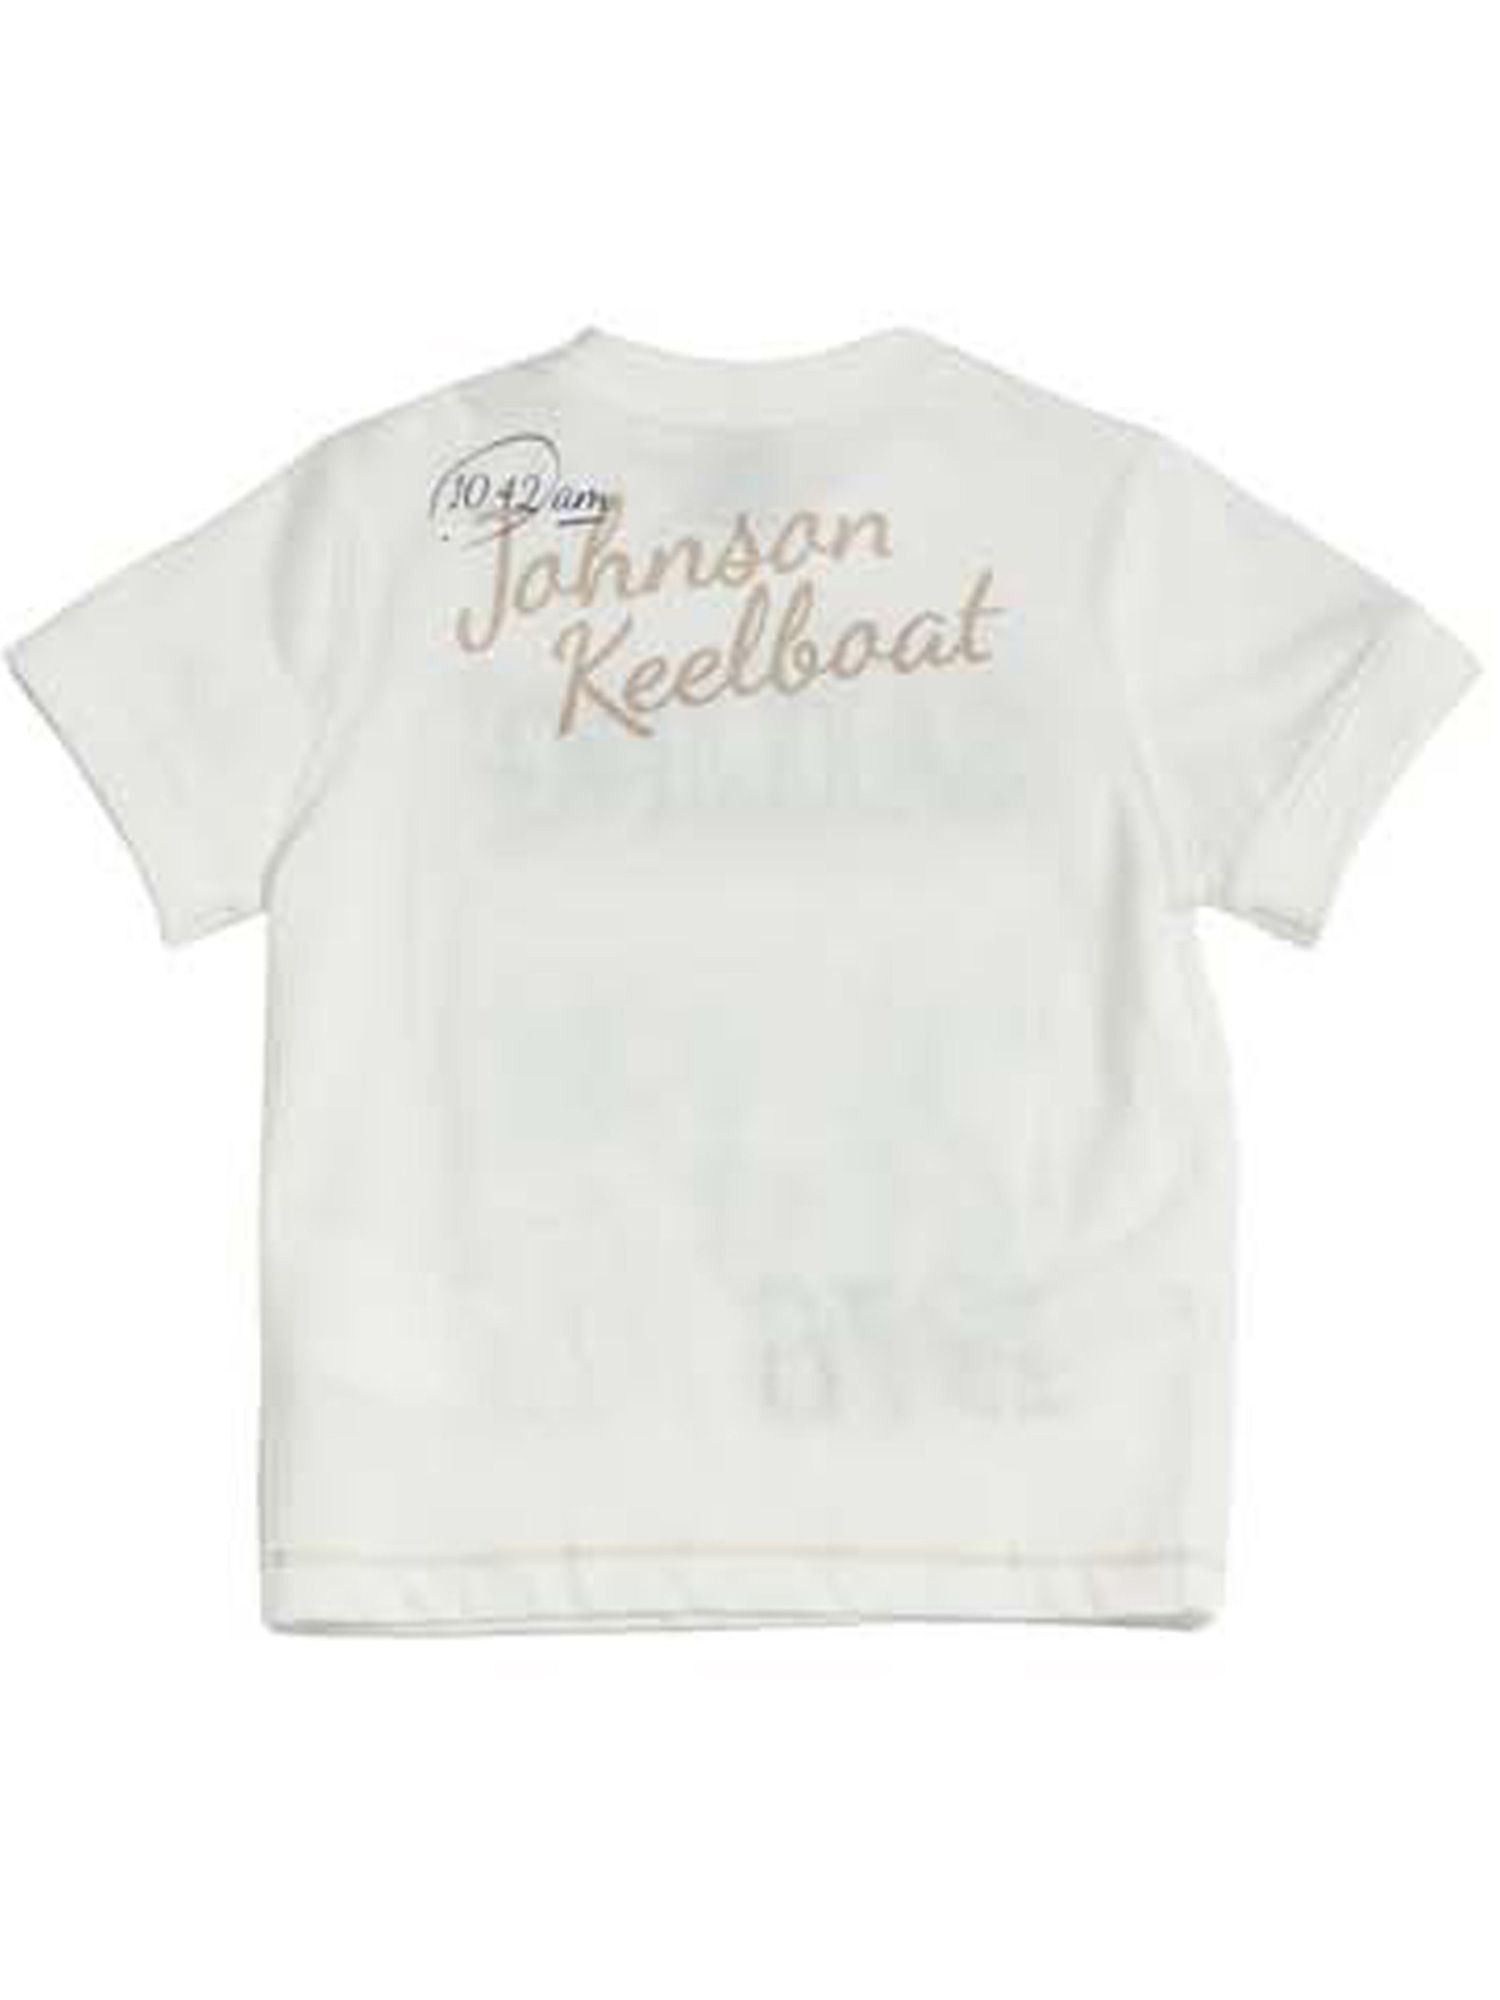 Boys front printed t-shirt